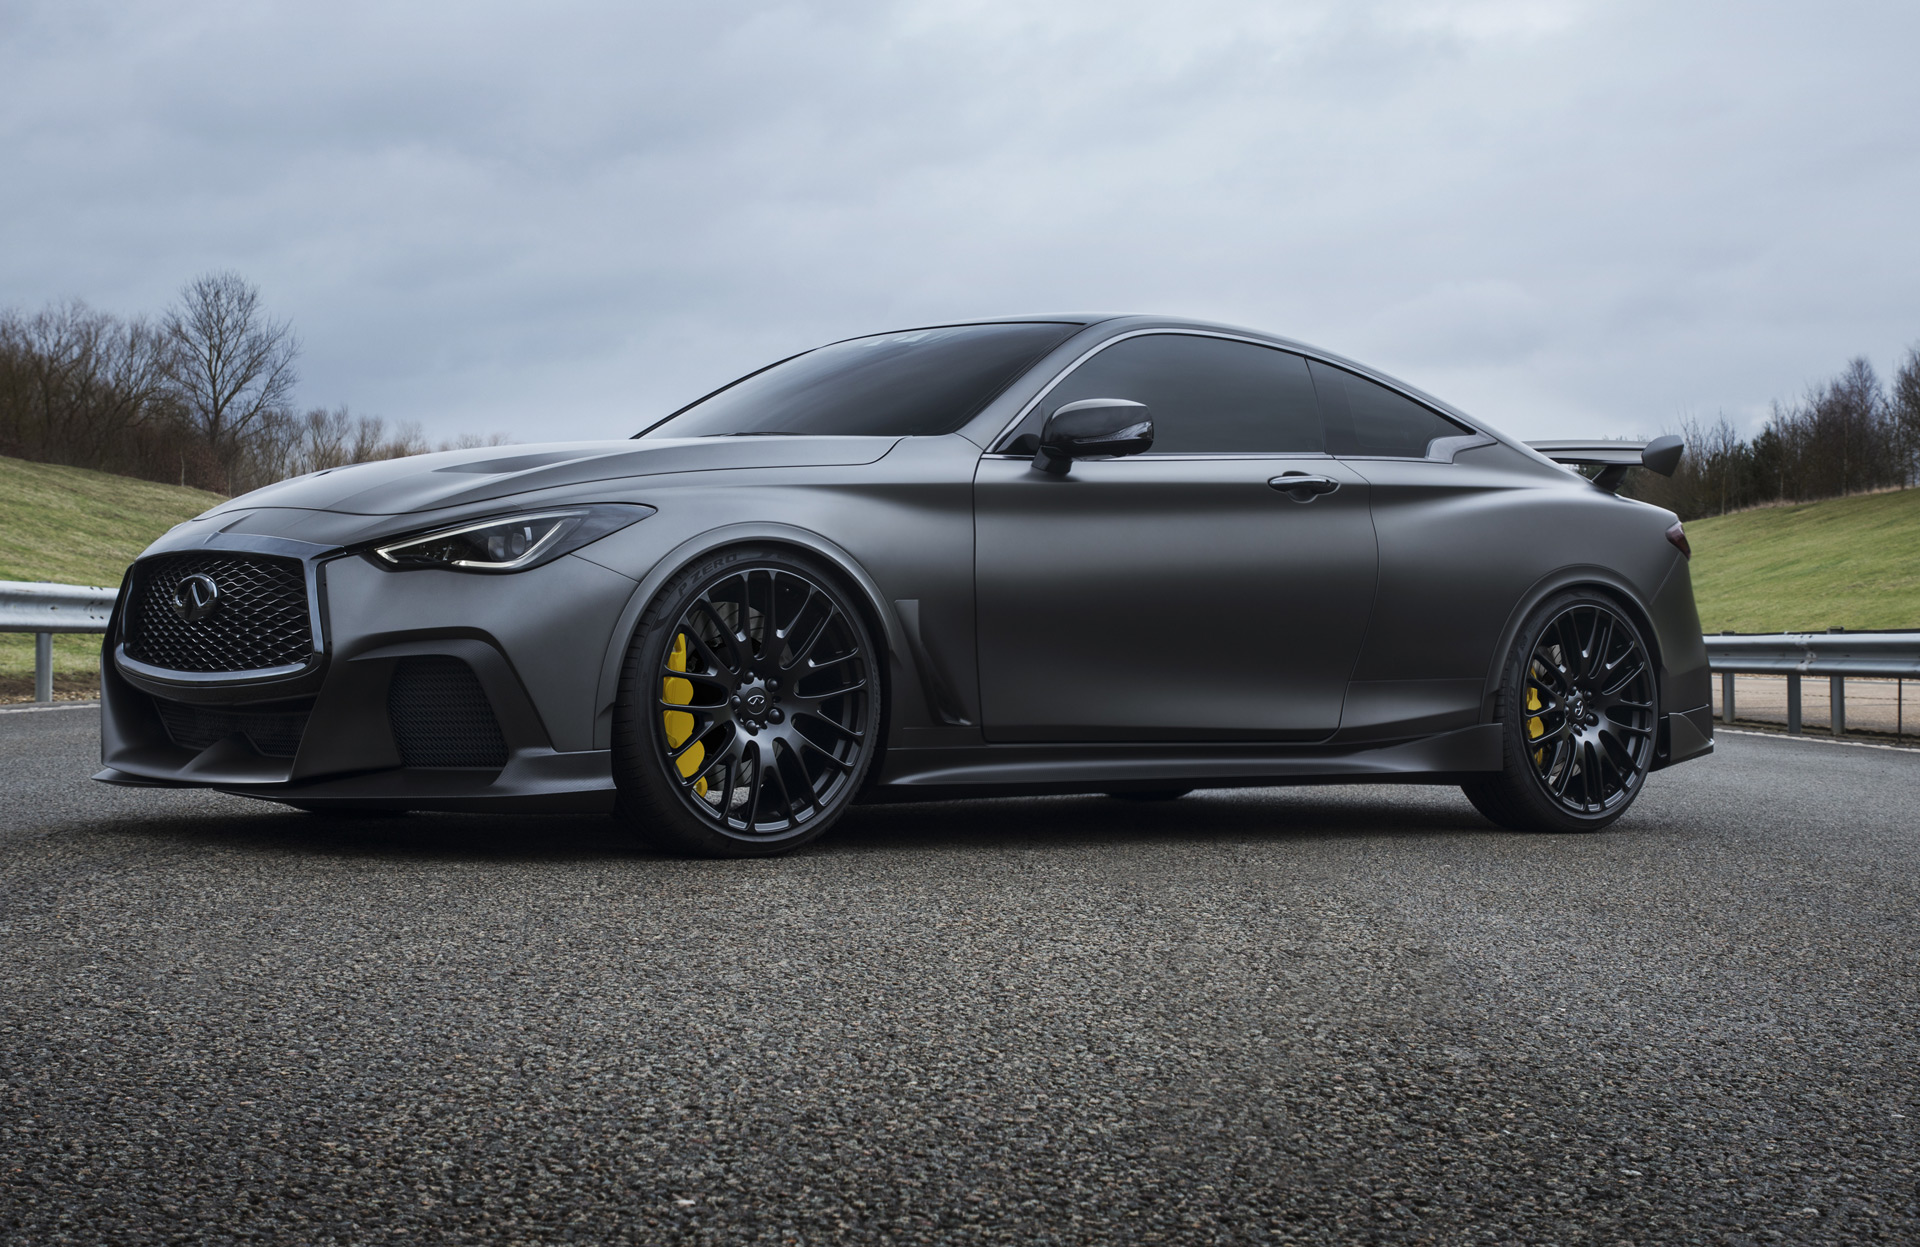 infiniti 39 s q60 project black s will wear special made pirelli tires. Black Bedroom Furniture Sets. Home Design Ideas